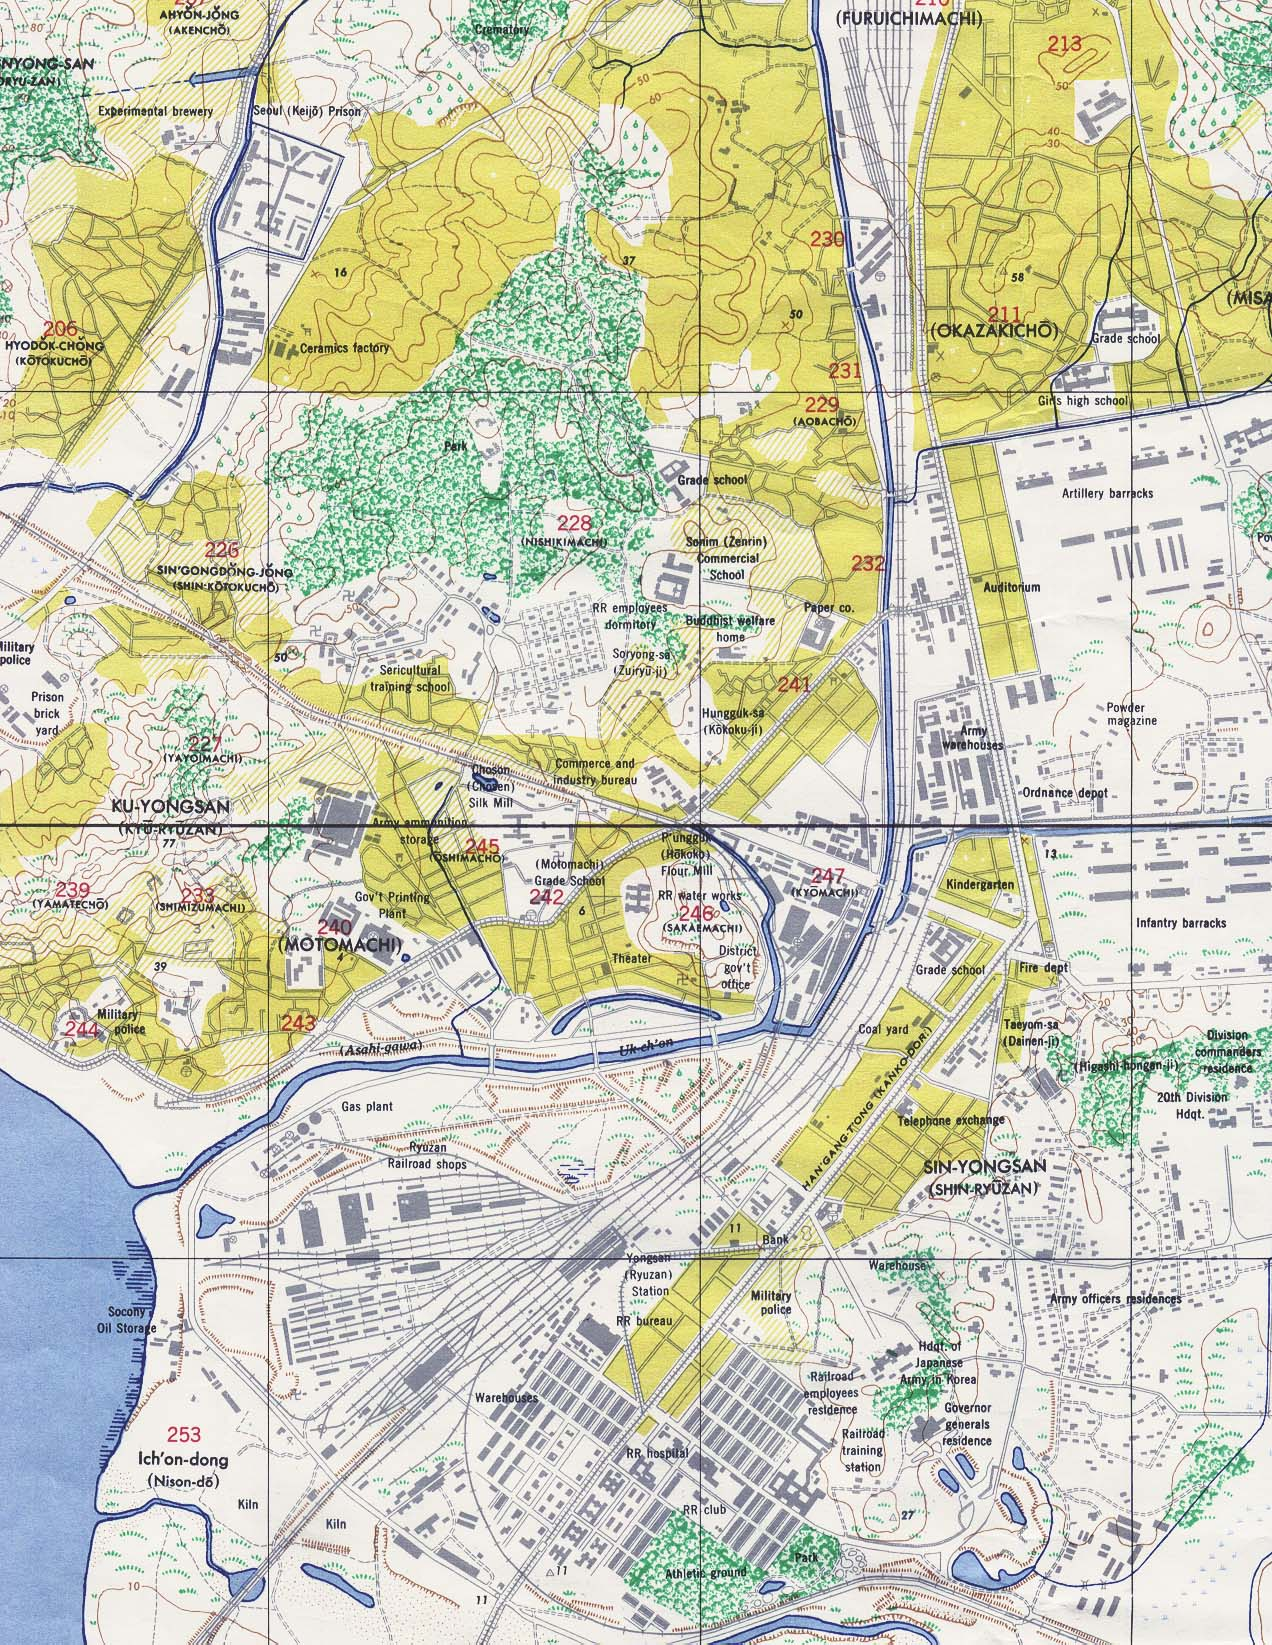 Seoul Korea Map In English.Korea Maps Perry Castaneda Map Collection Ut Library Online